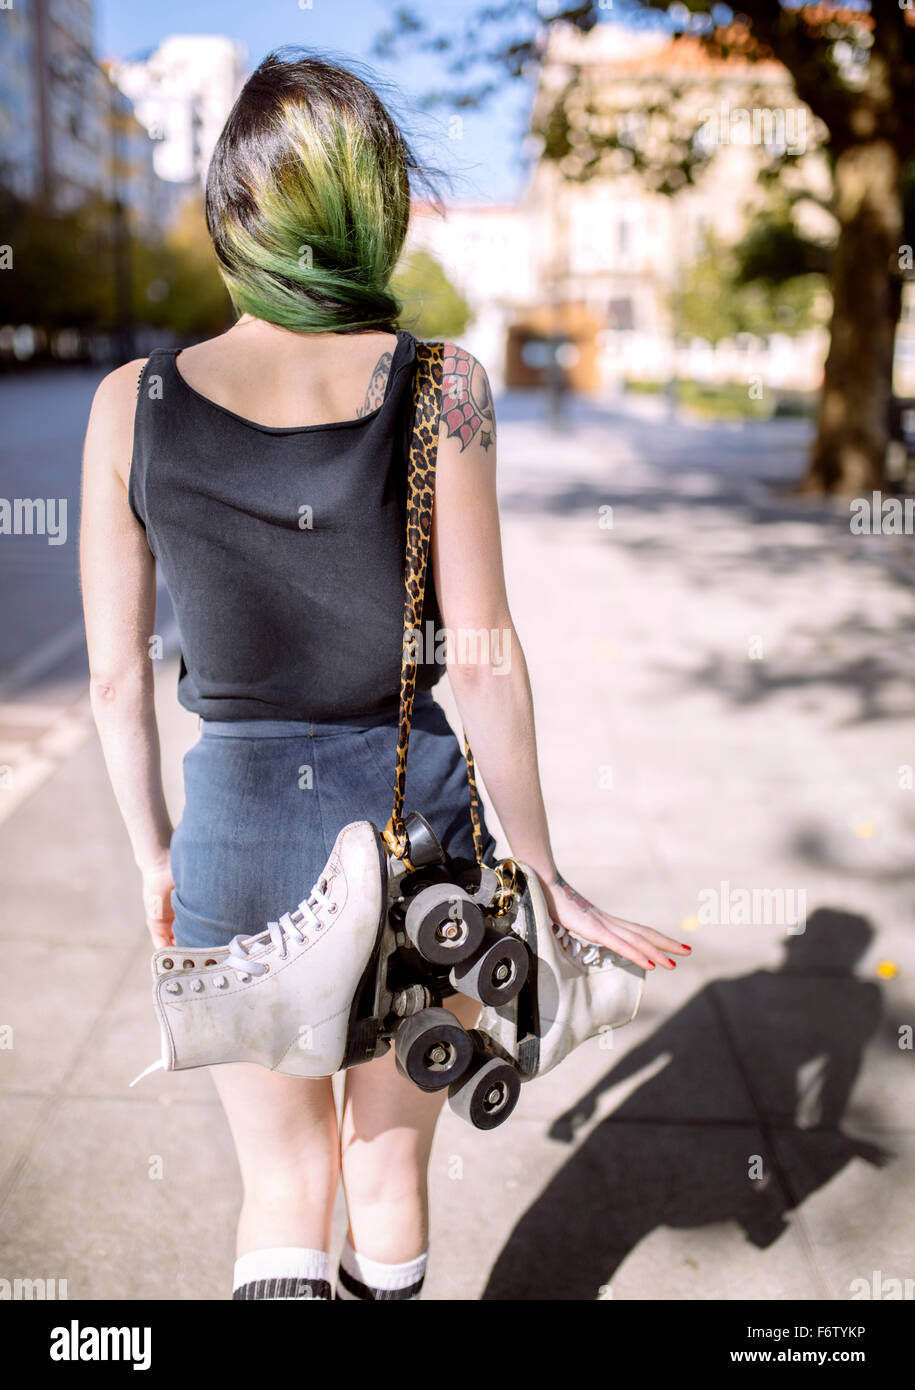 Spain, Gijon, back view of young woman with green dyed hair carrying inline skates over shoulder Stock Foto